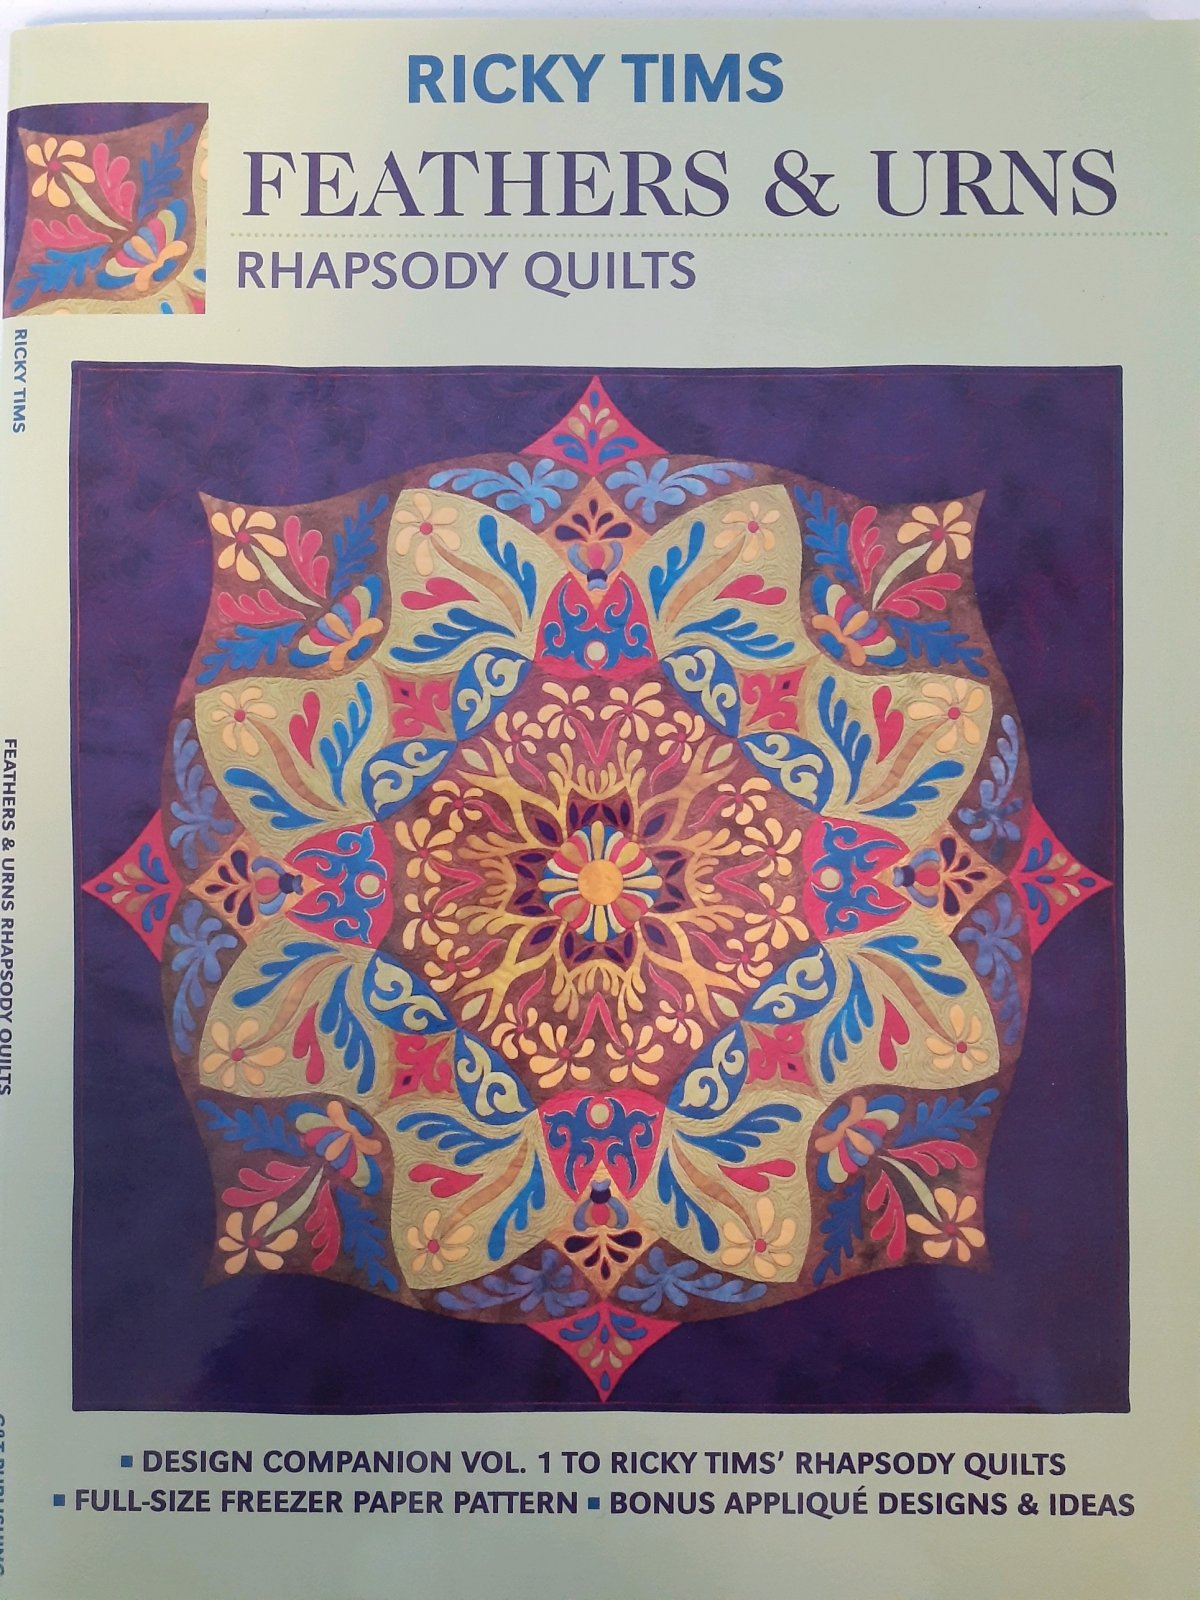 Feathers & Urns Rhapsody Quilts